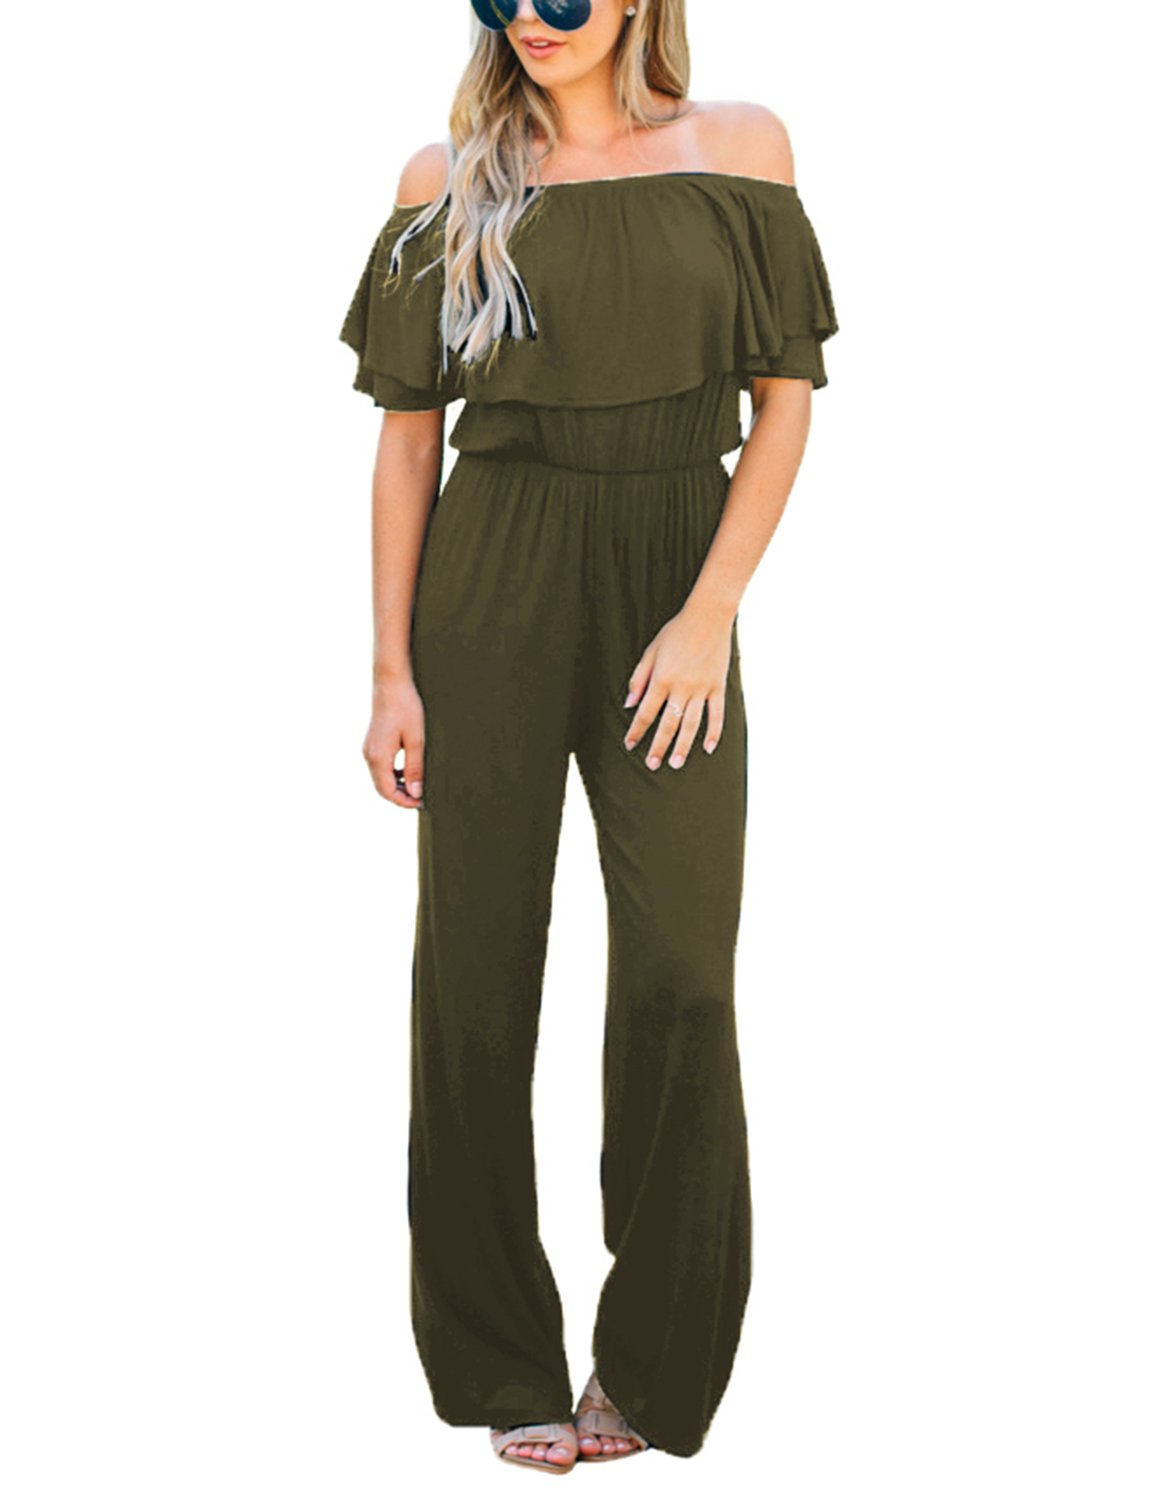 Lookbook Store Women's Sexy Off Shoulder High Waisted Ruffled Long Wide Leg Pants Army Green Jumpsuits Rompers Size L